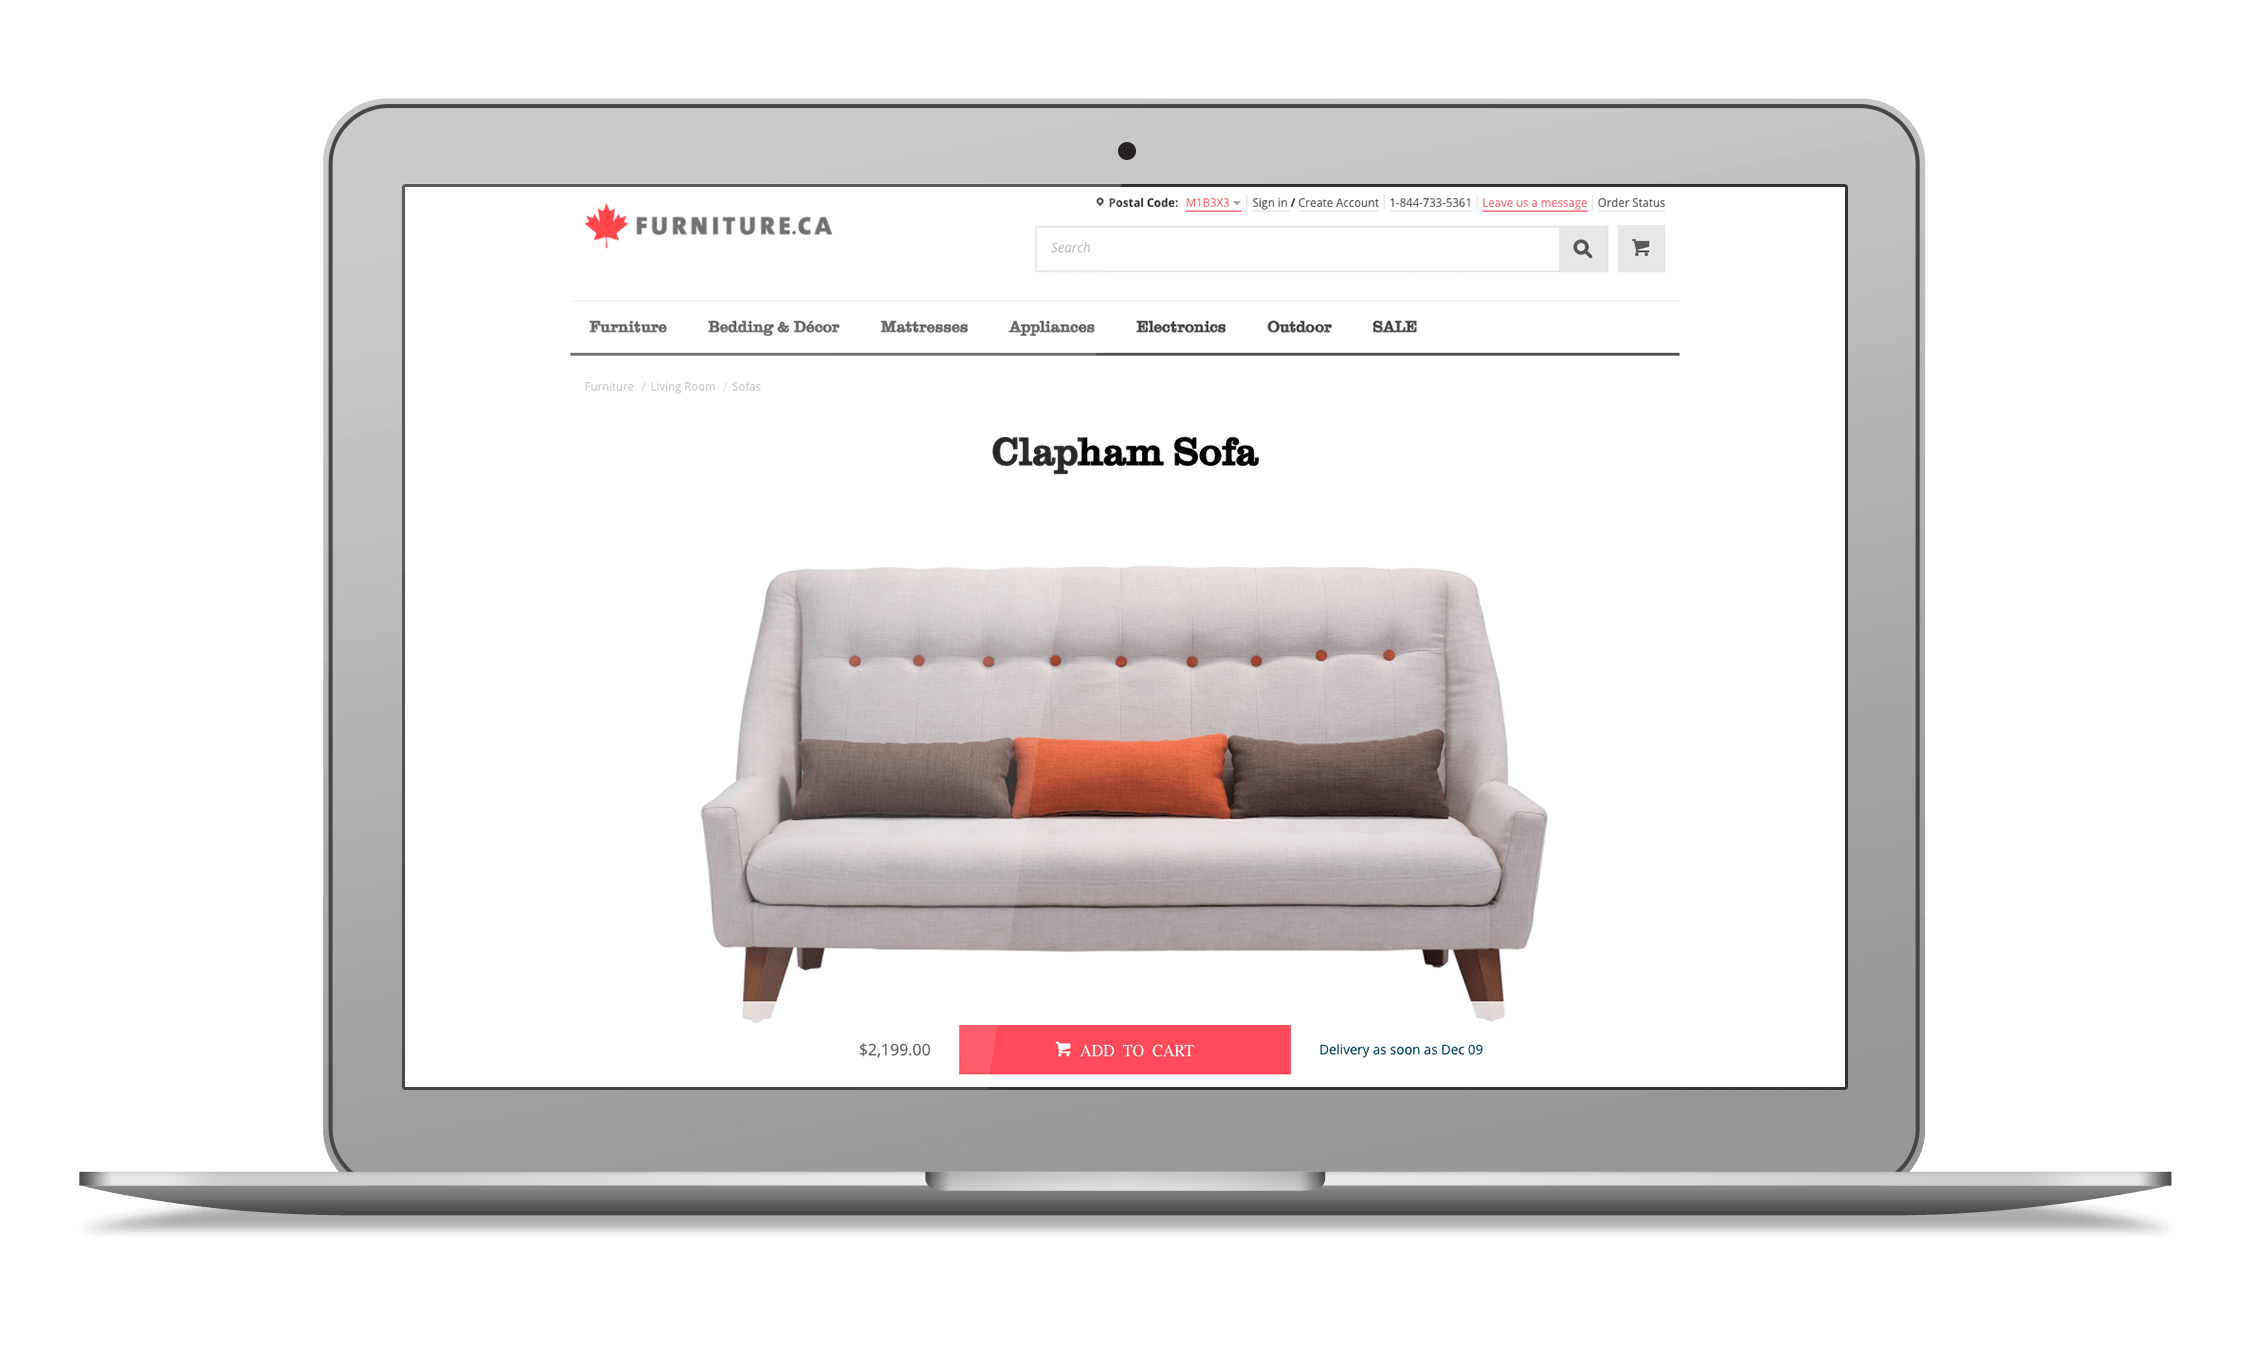 Furniture.ca is more than just an online furniture store. It's a better way  to shop online for furniture, home décor and so much more!